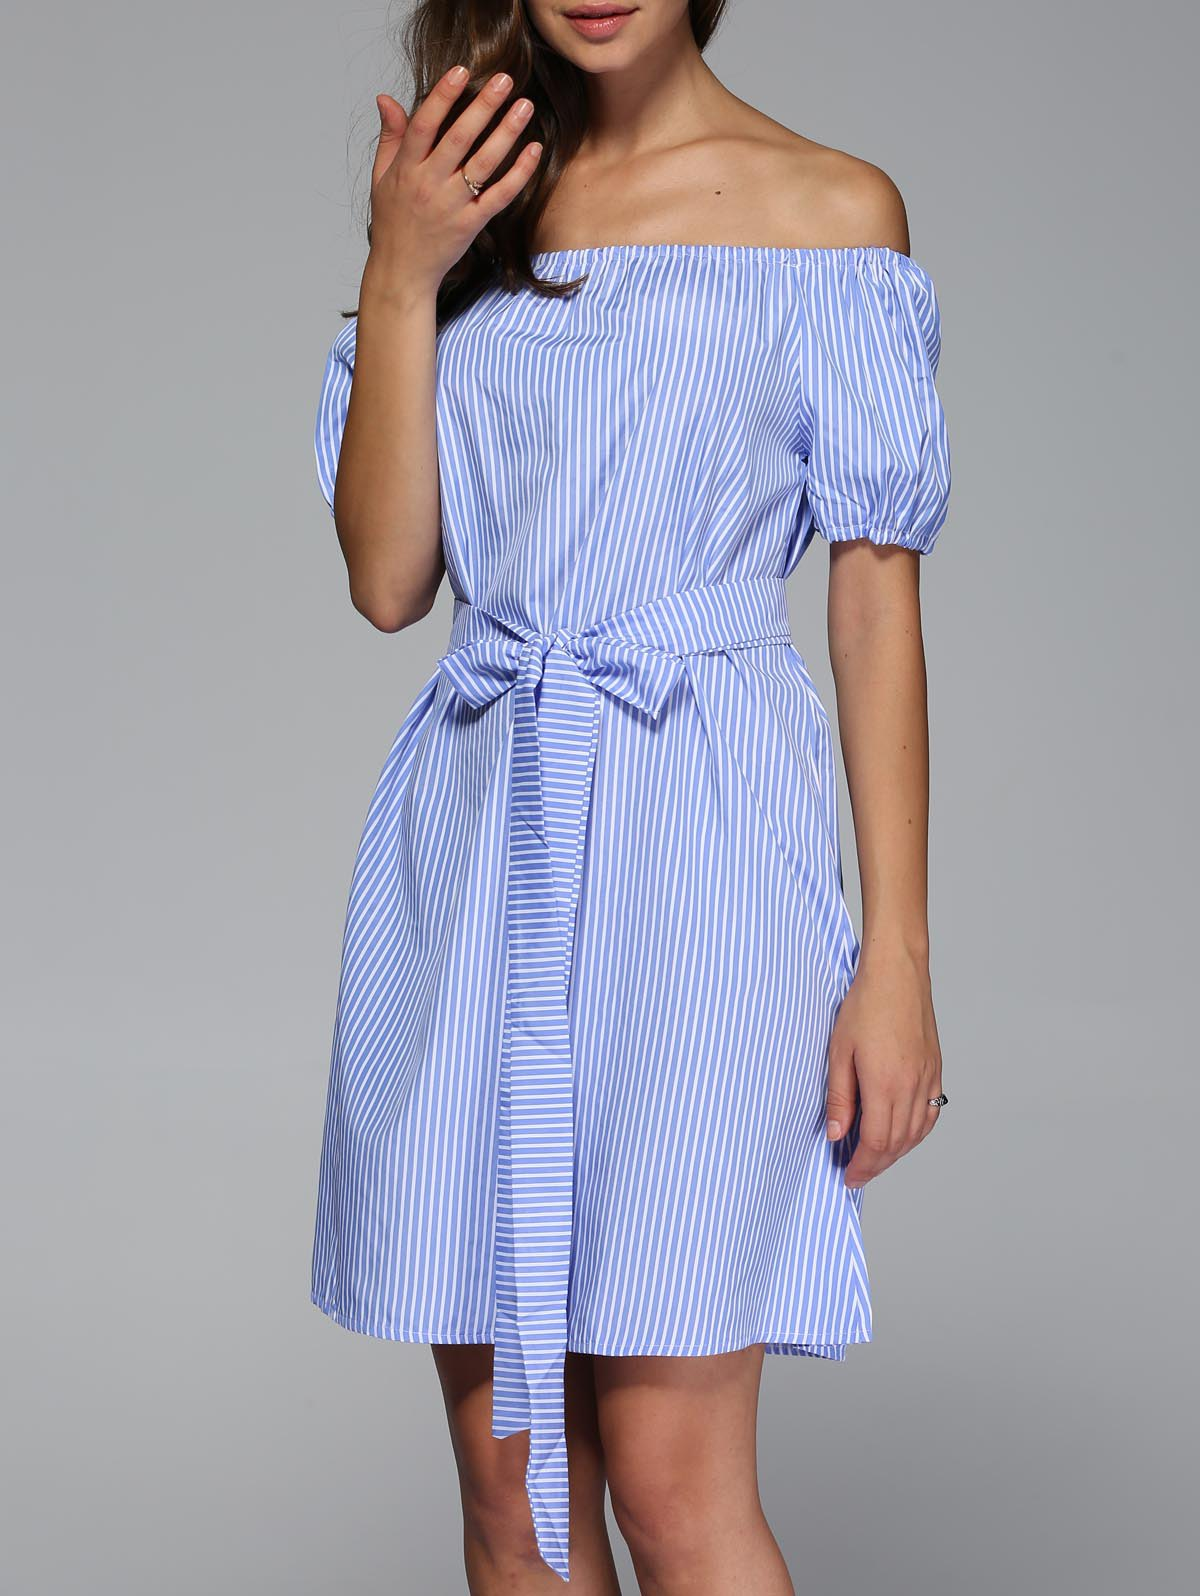 Off The Shoulder Bowknot Striped Mini Dress - LIGHT BLUE L